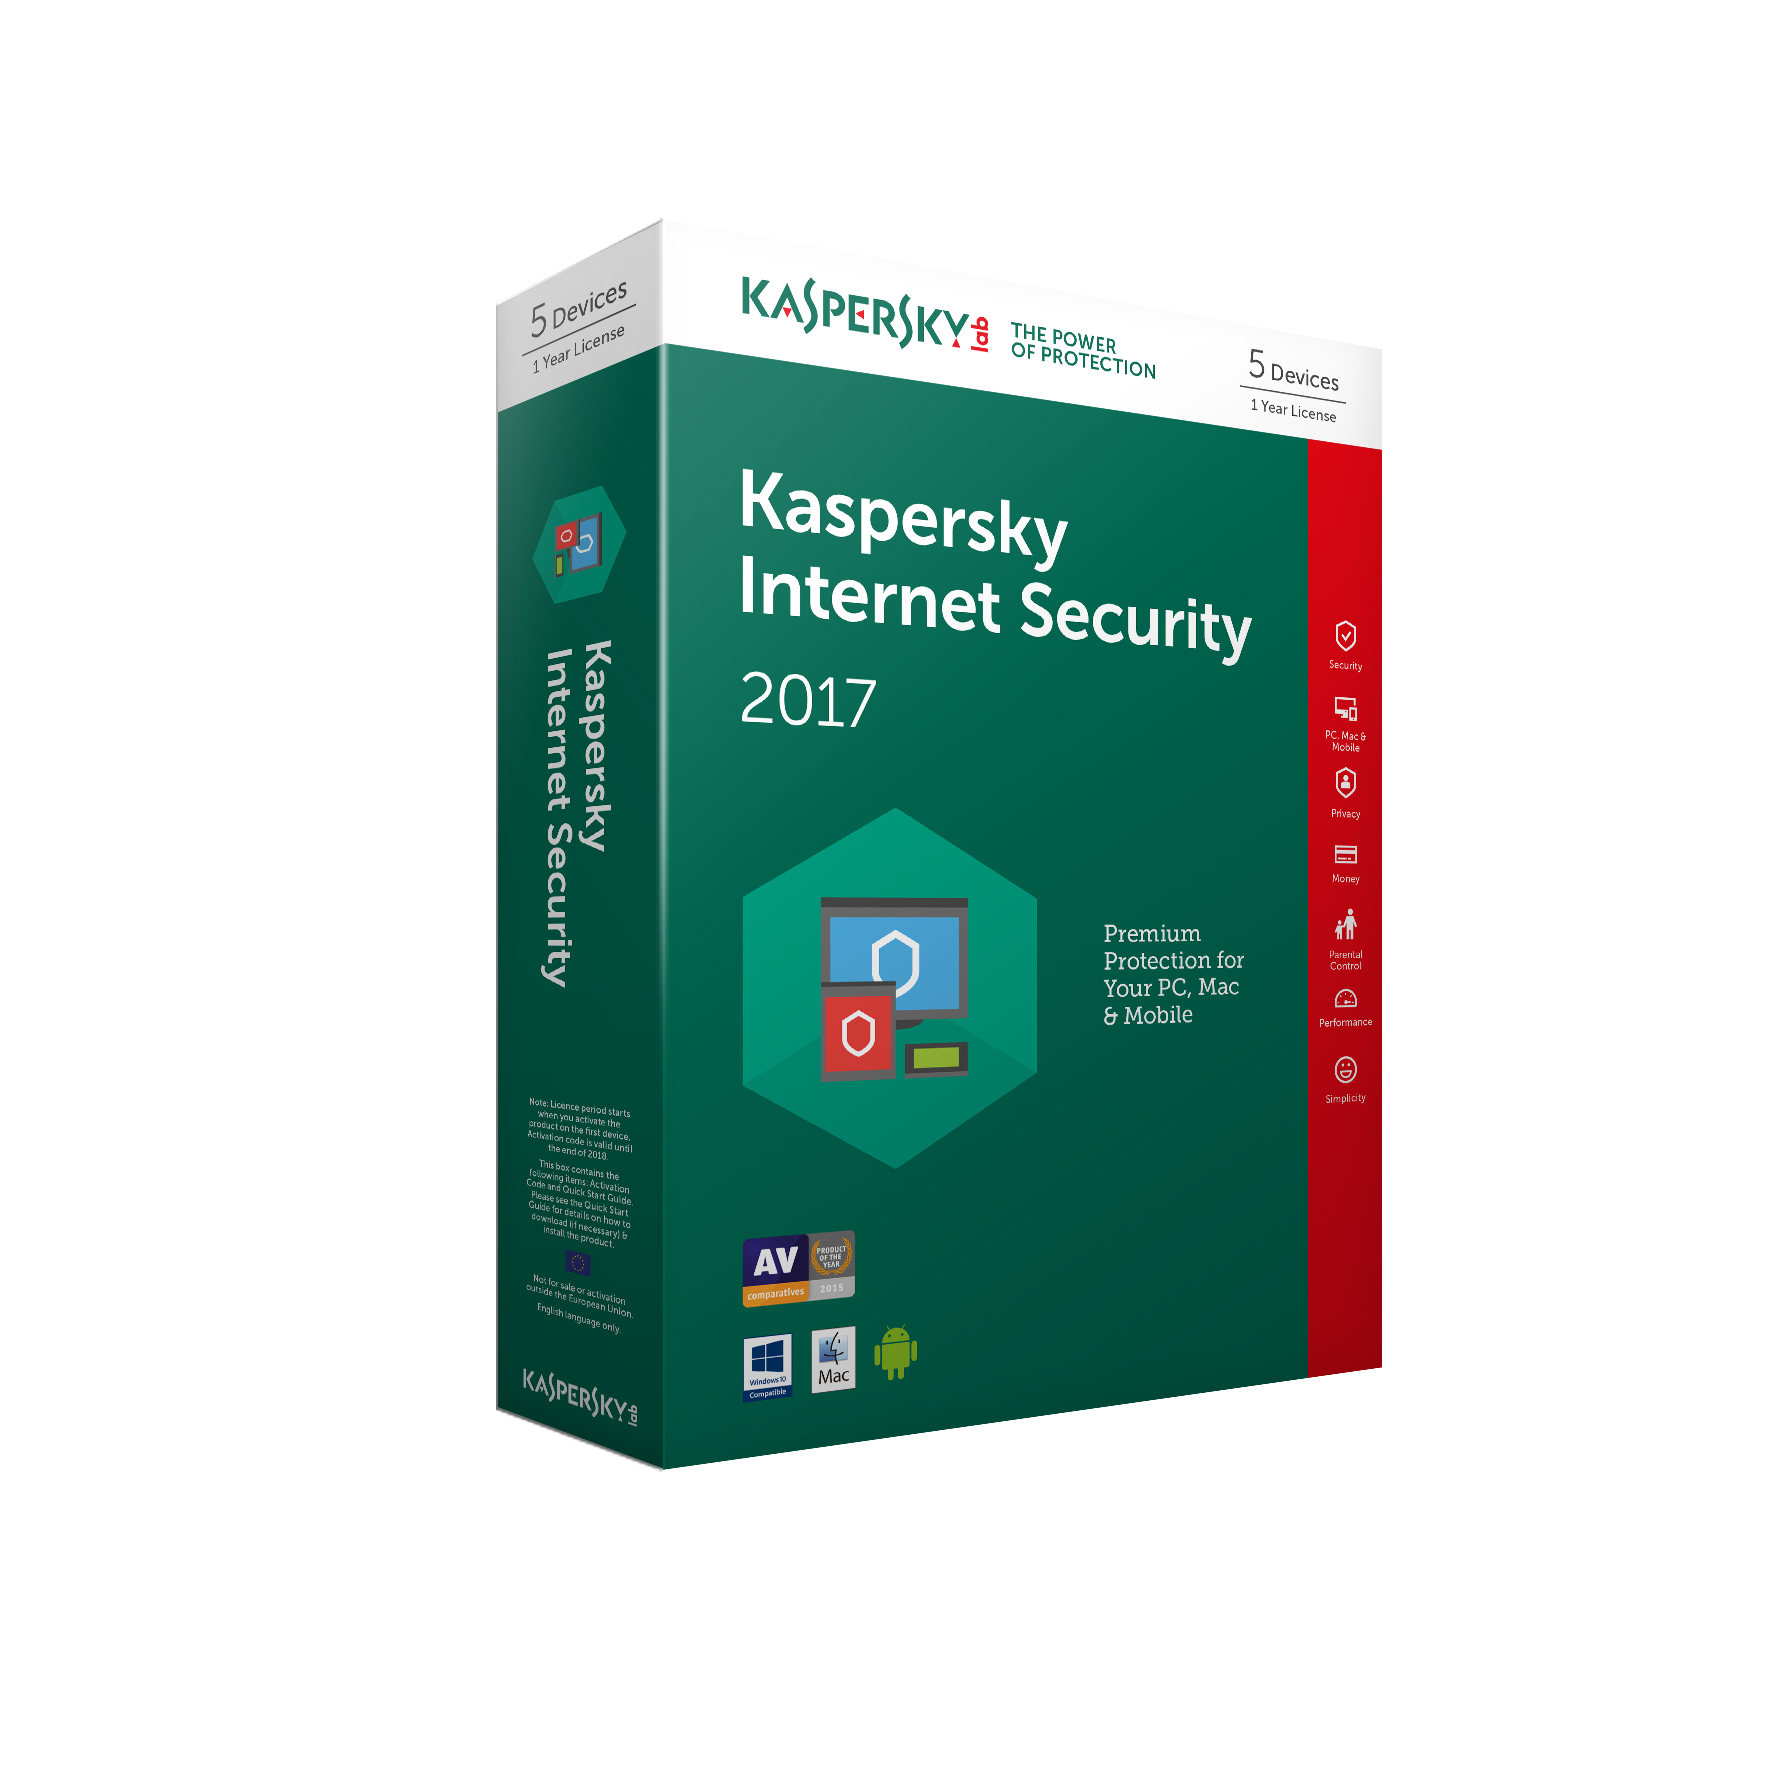 Kaspersky Lab Kaspersky Internet Security 2017 - 5 Devices 1 Year (Standard Packaging)